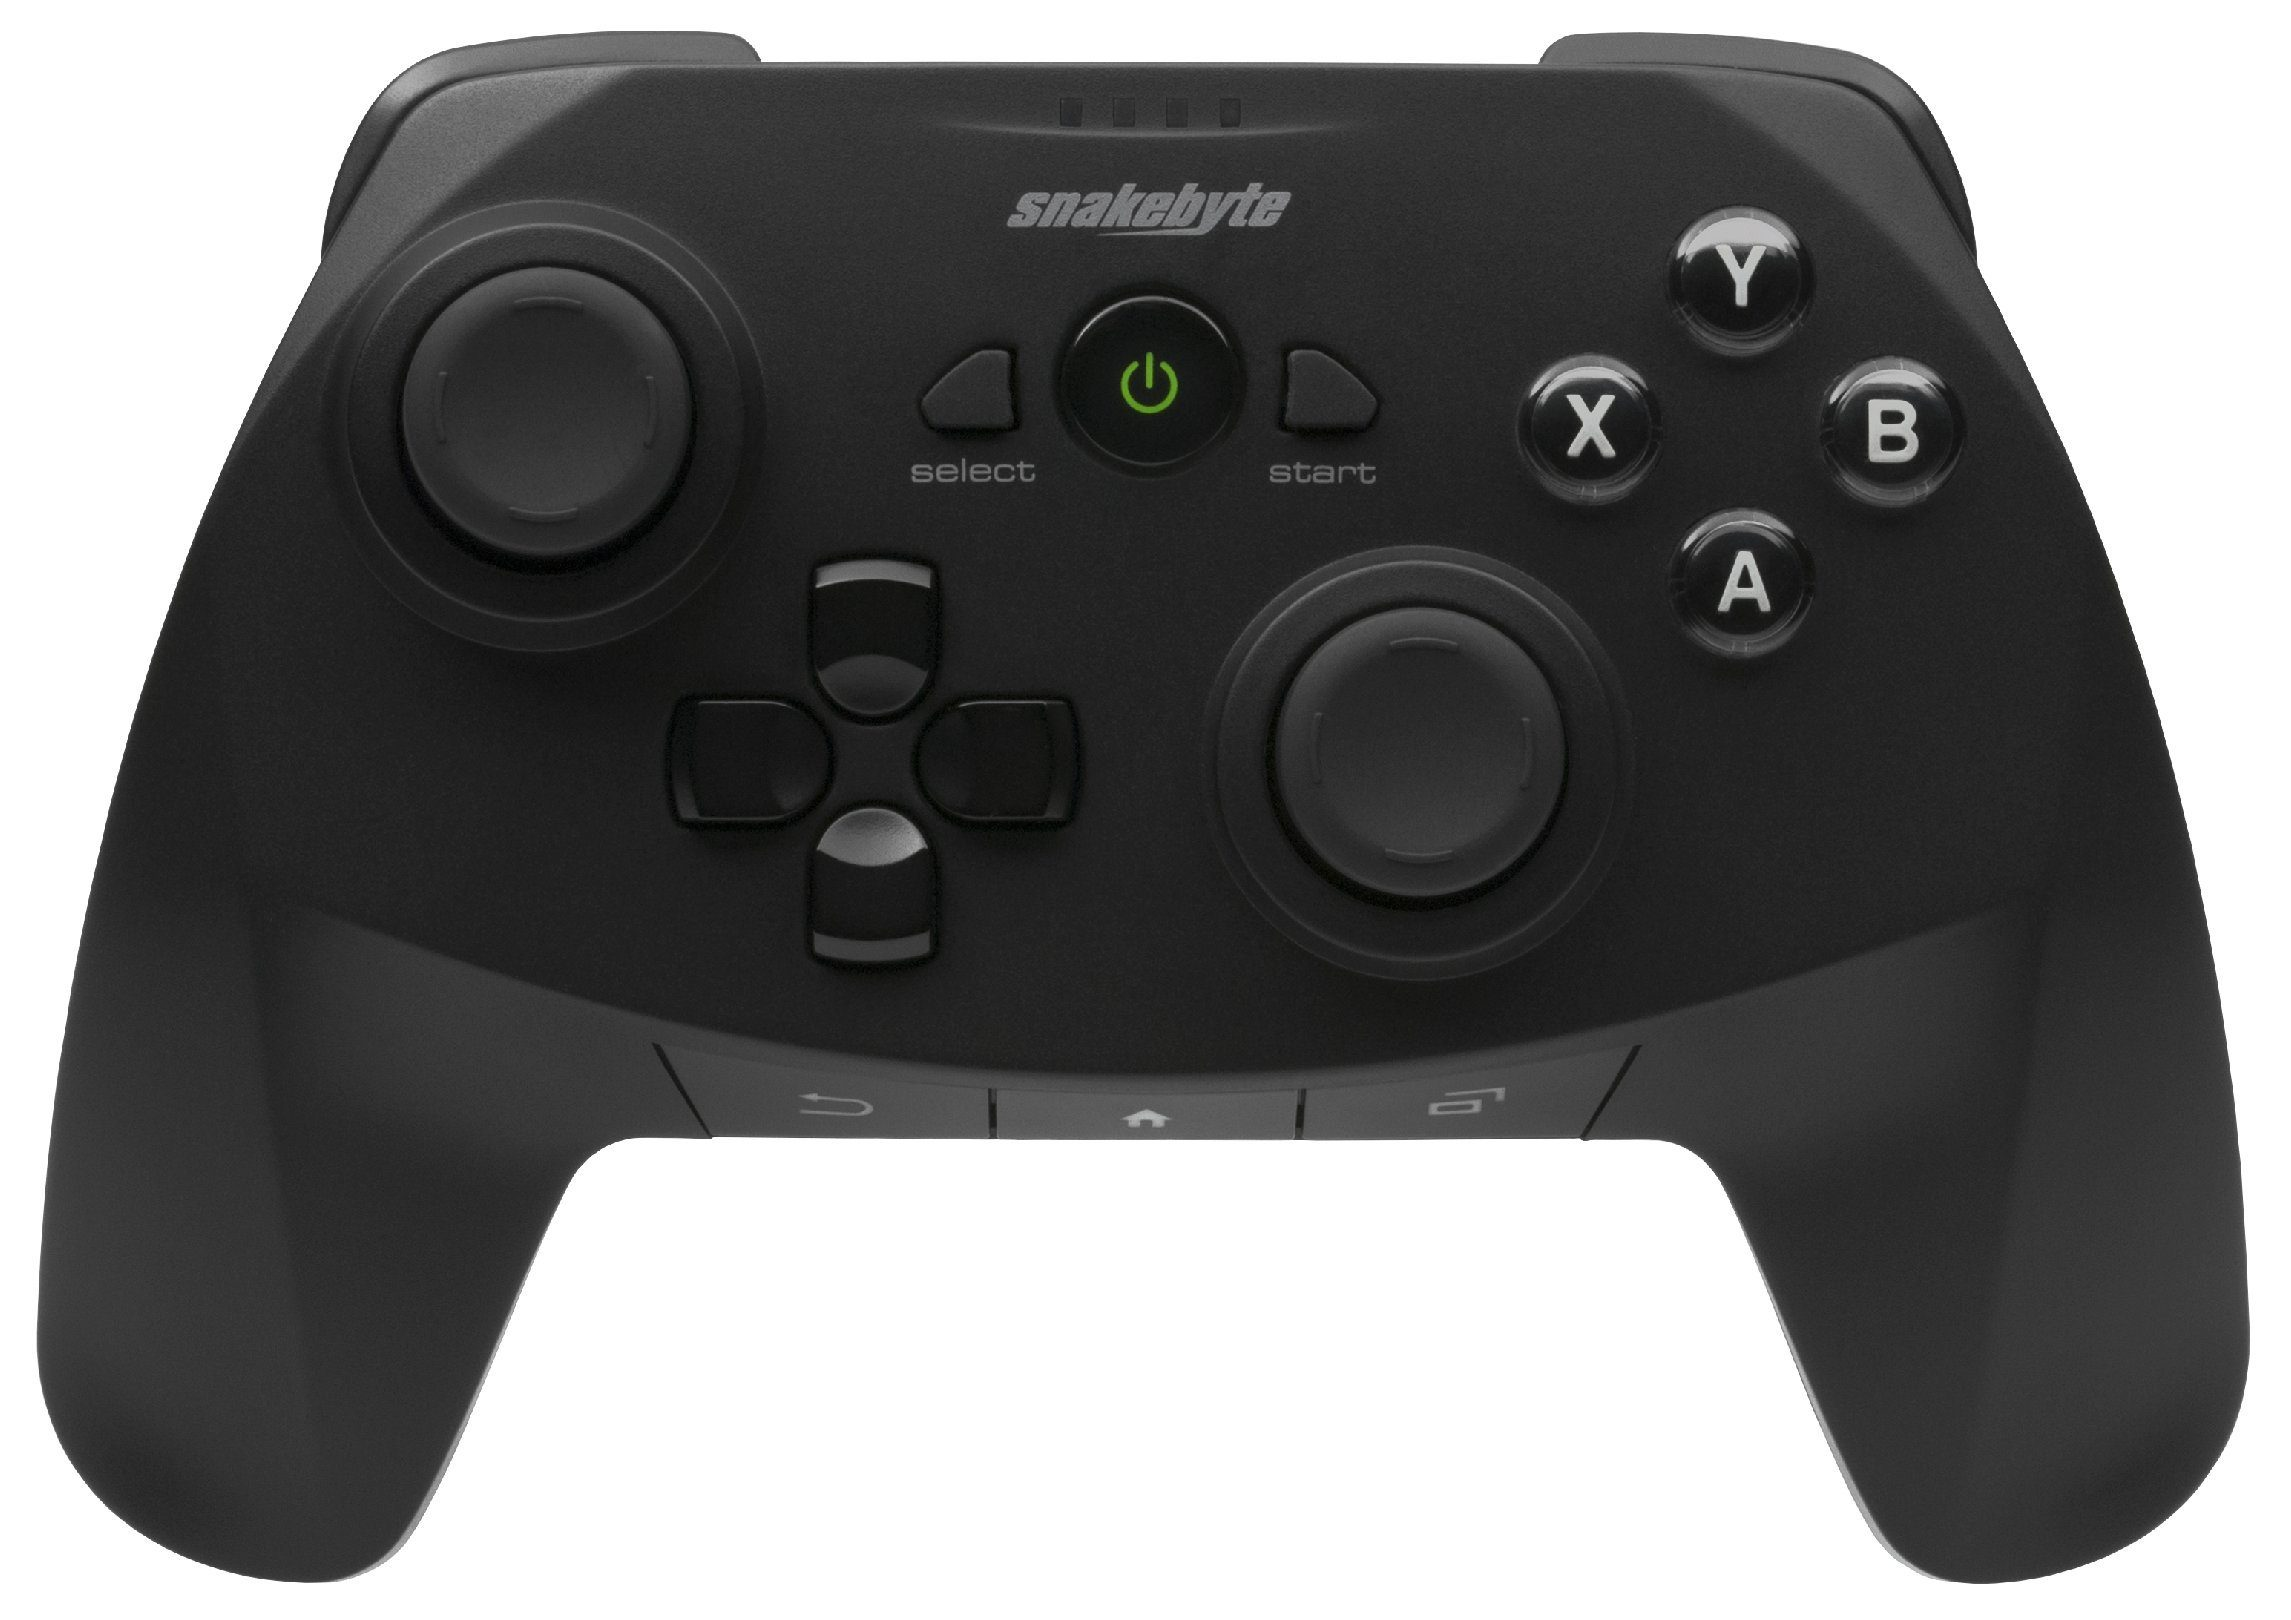 Snakebyte Joypad Android Game Pad Bluetooth Controller »(Tablet/Smartphone)«